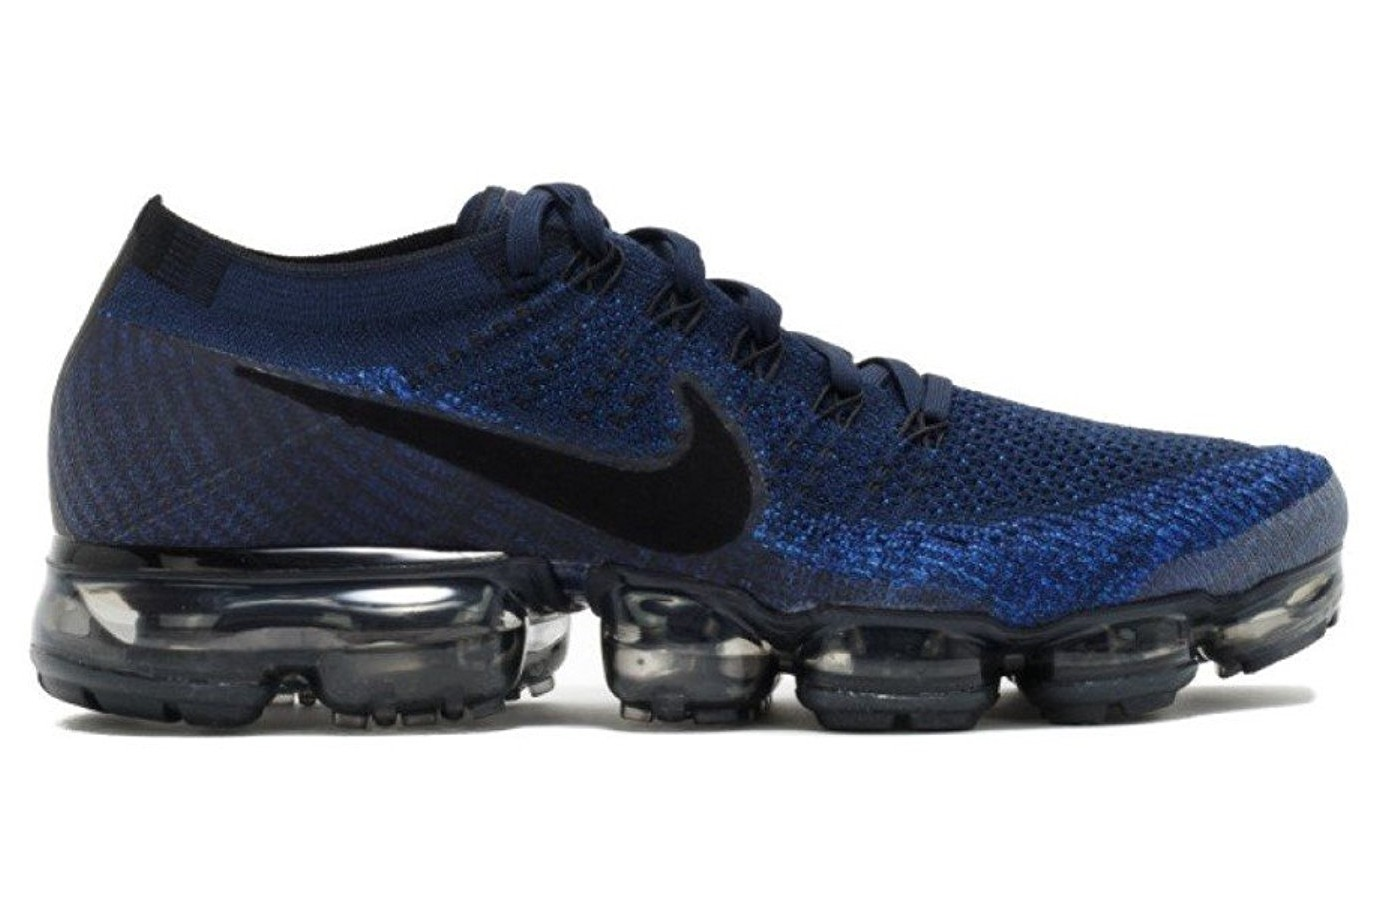 63daf26333660 Nike Air Vapormax Flyknit Reviewed for Performance in 2019